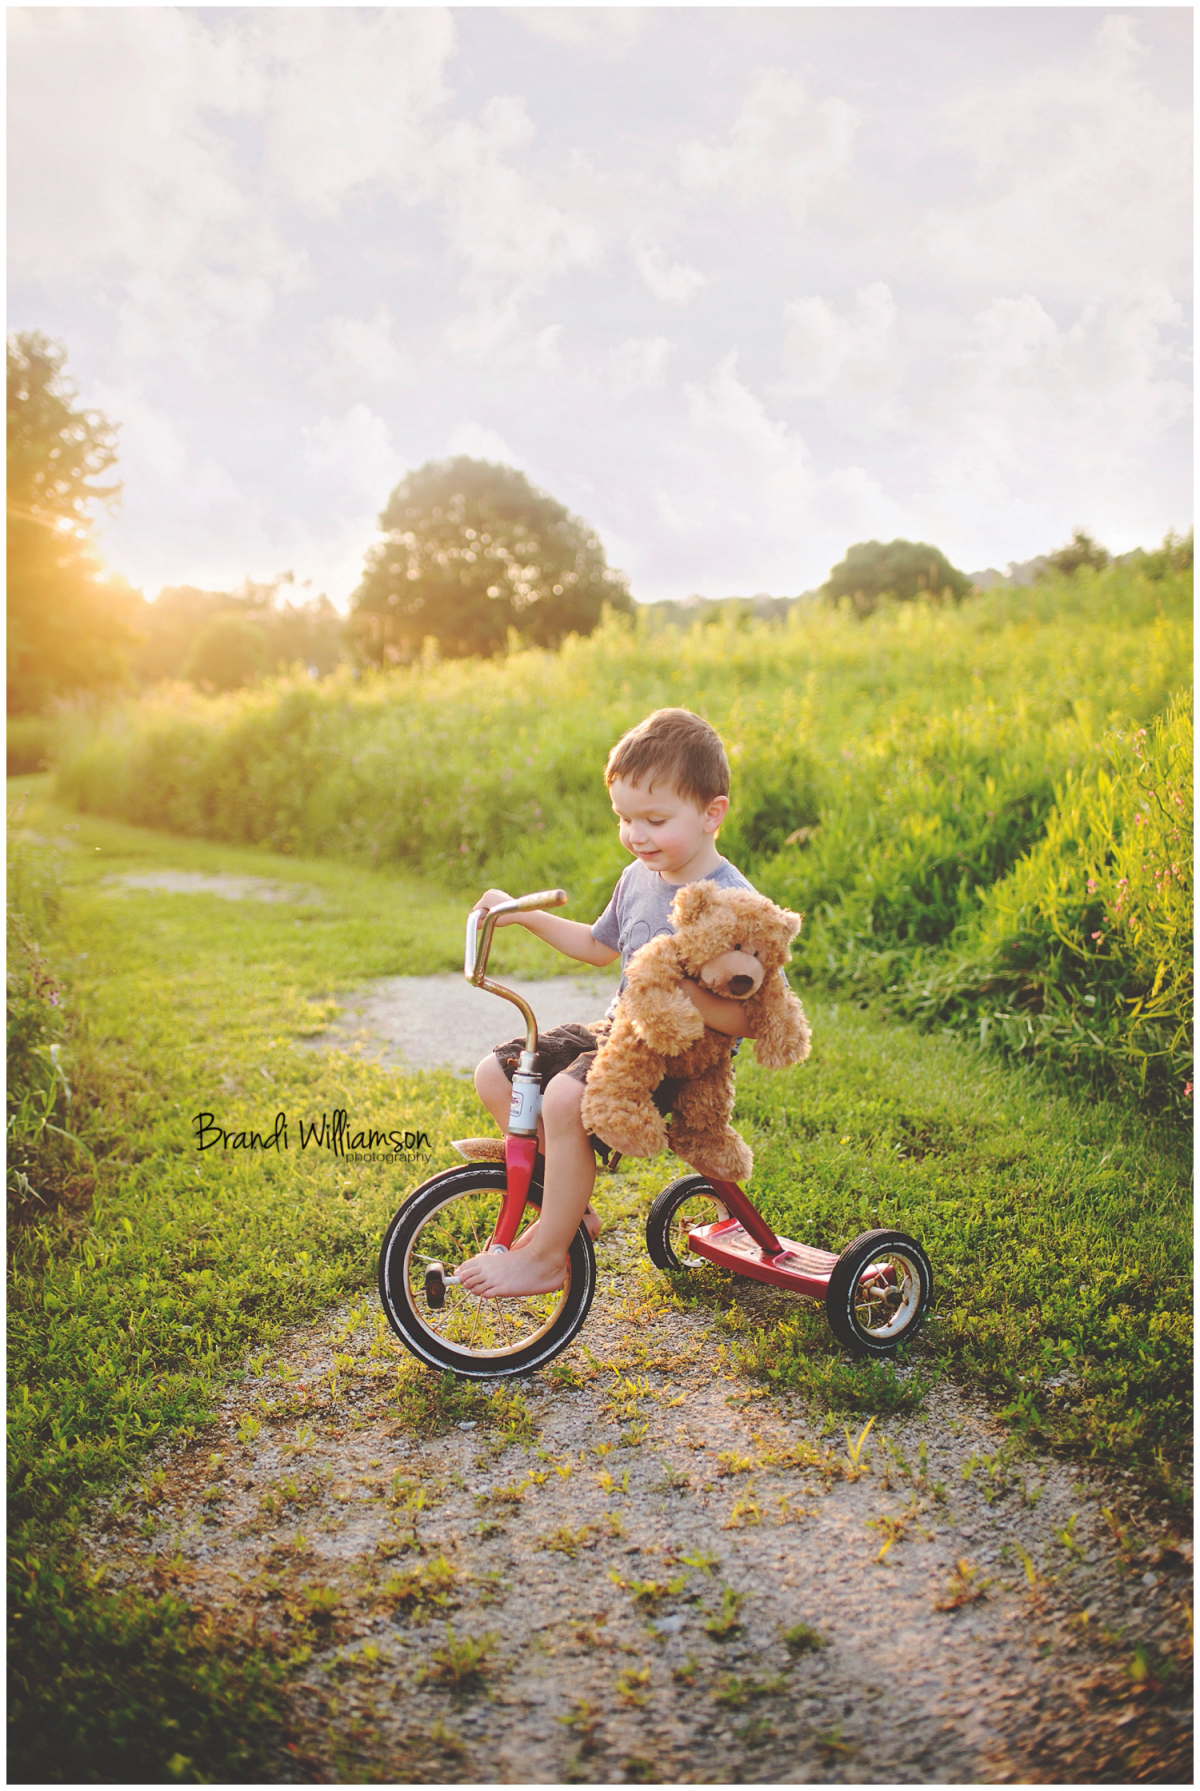 Dover OH Toddler Photographer   boy on bike with teddy bear, boy with teddy bear   Finding Me Project 52   #findingme52   www.brandiwilliamsonphotography.com